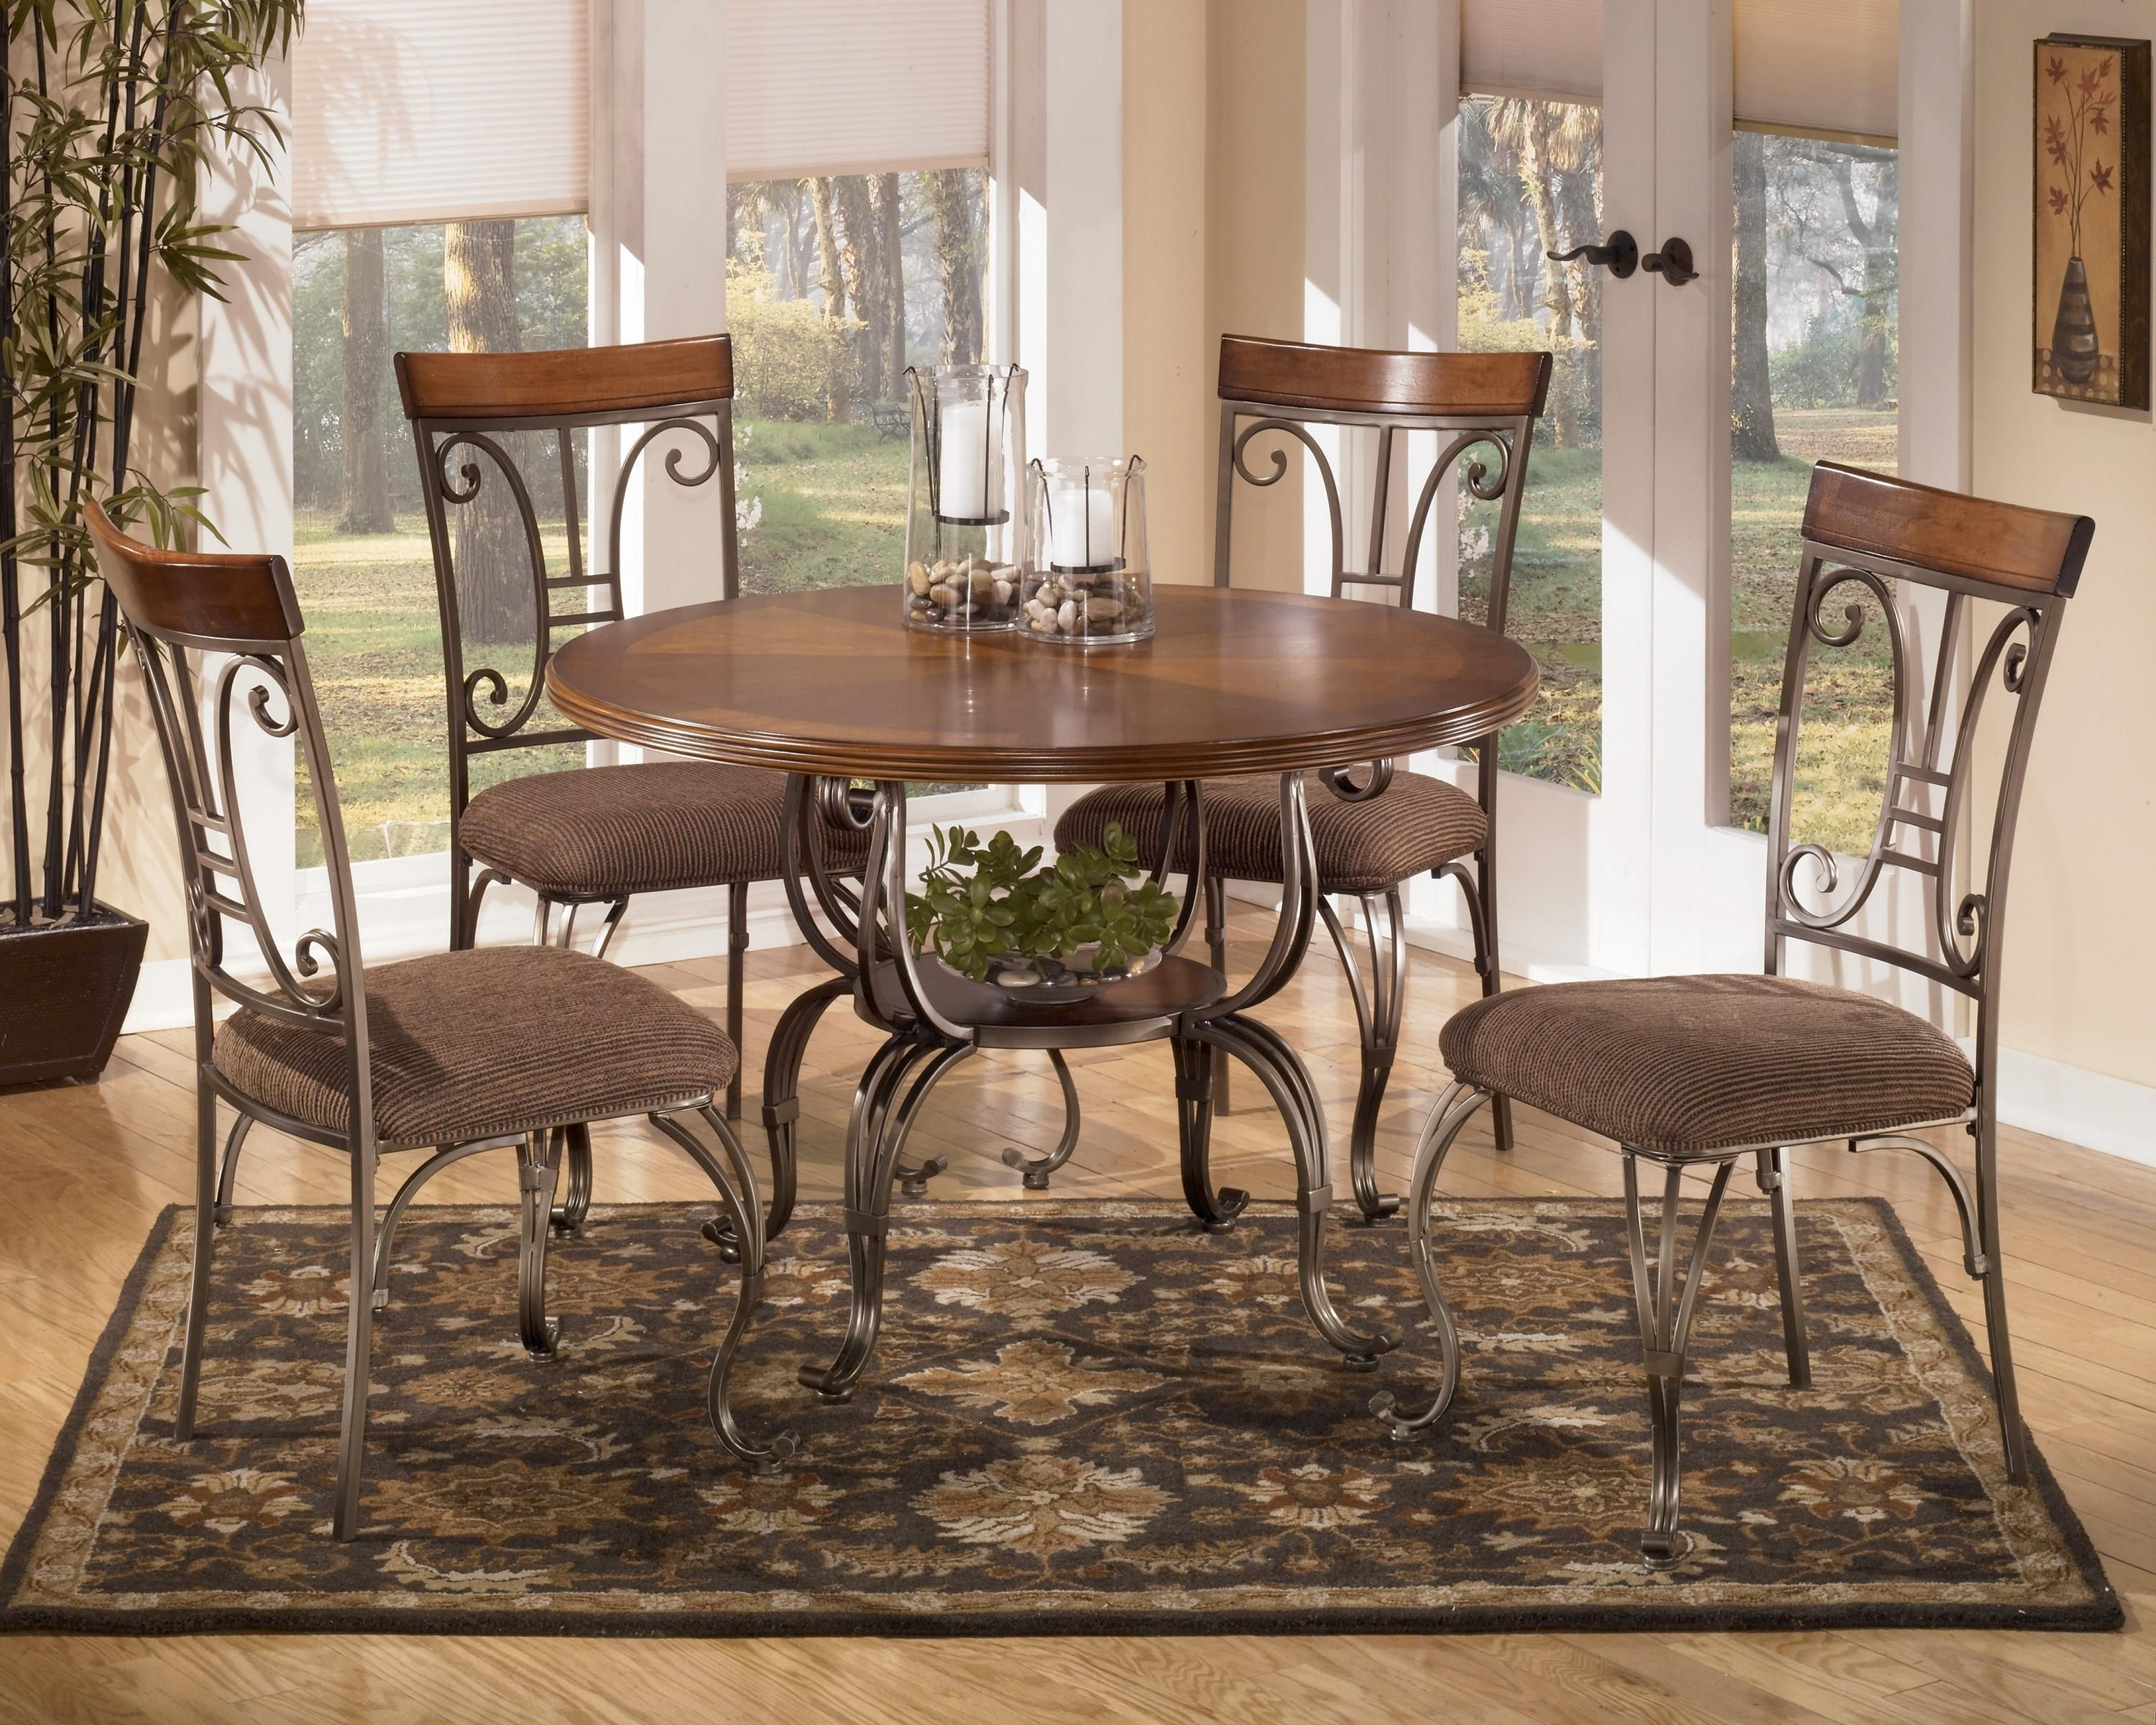 Plentywood 5 Piece Round Dining Table Setsignature Design For Recent Candice Ii 5 Piece Round Dining Sets With Slat Back Side Chairs (Image 13 of 20)